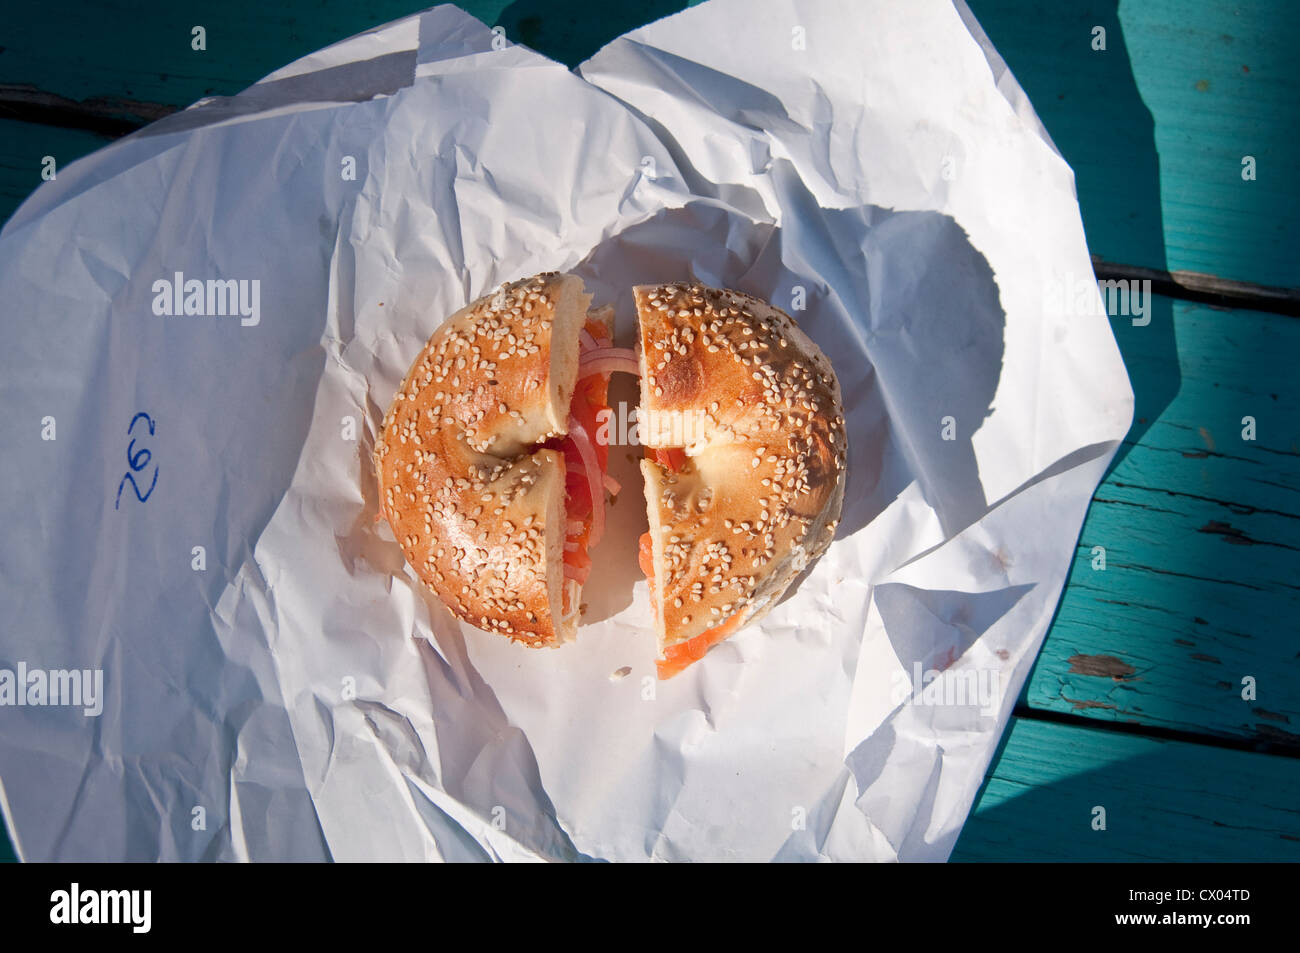 A sesame seed bagel with lox (smoked salmon), cream cheese, onion and tomato, sitting on a paper wrapper, from Spring Stock Photo